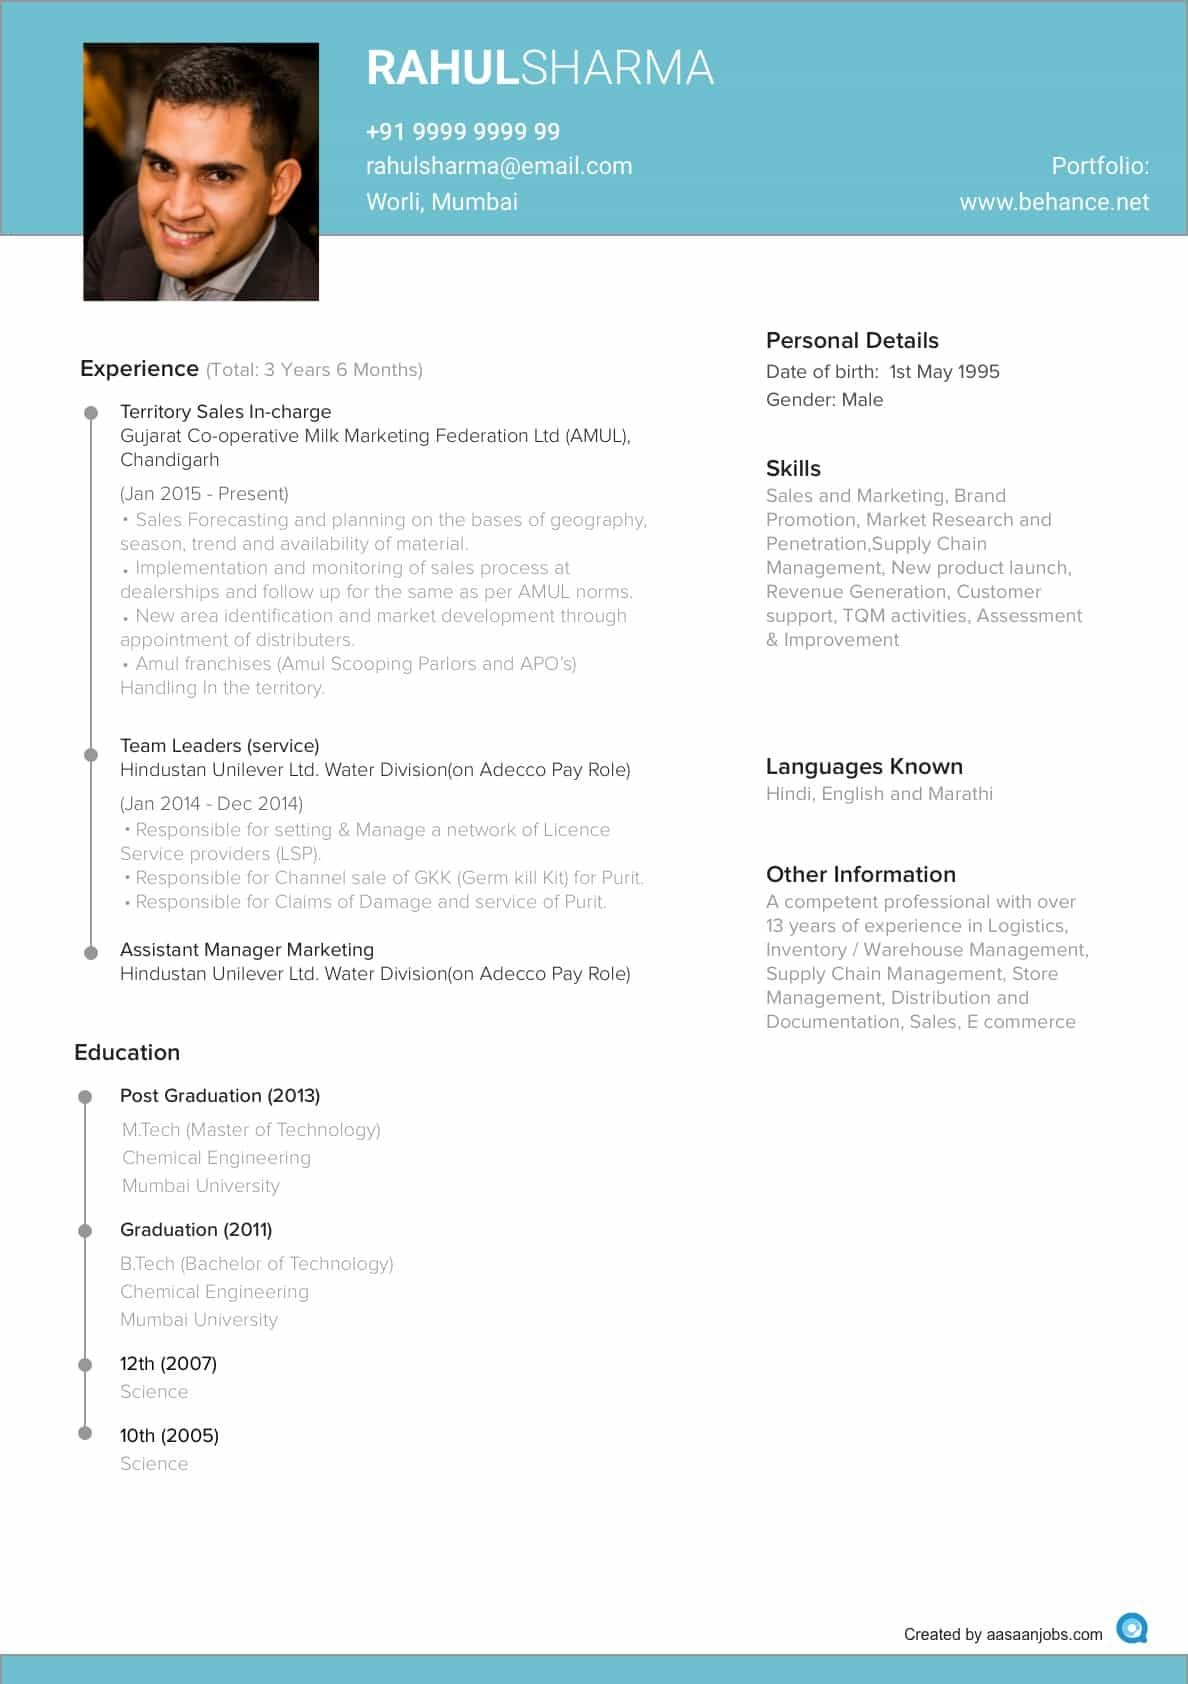 Superior Professionally Drafted Resume Creates A Good Impression In The Interview.  Use The Resume Format To Build Your Own Professional CV. Inside Resume Format 2014